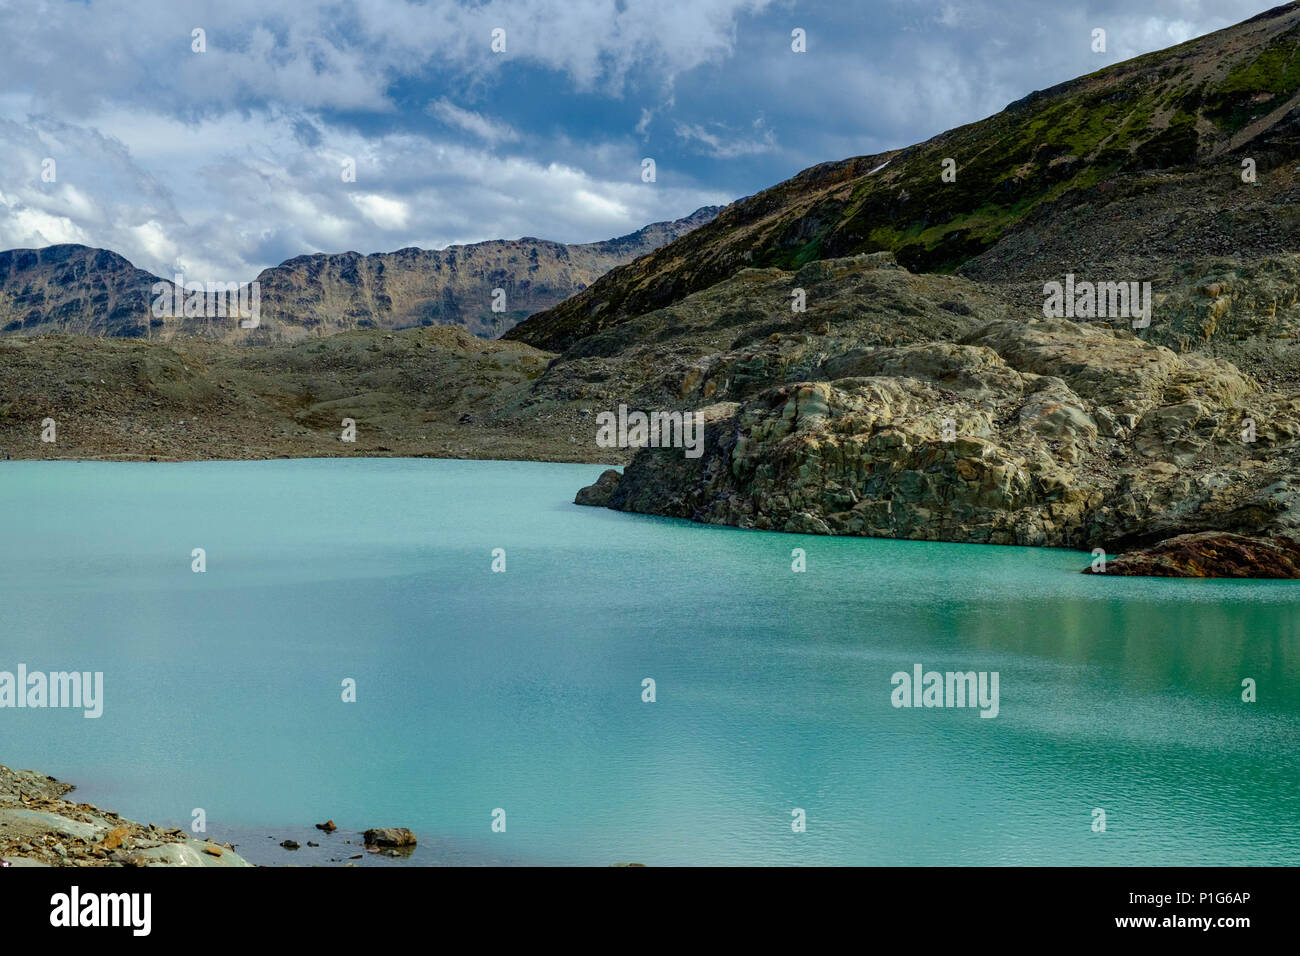 The 'Laguna de los Témpanos' is one of the most fascinating mountain lakes near Ushuaia. With the colours and rocks, it seems to be another planet. Stock Photo